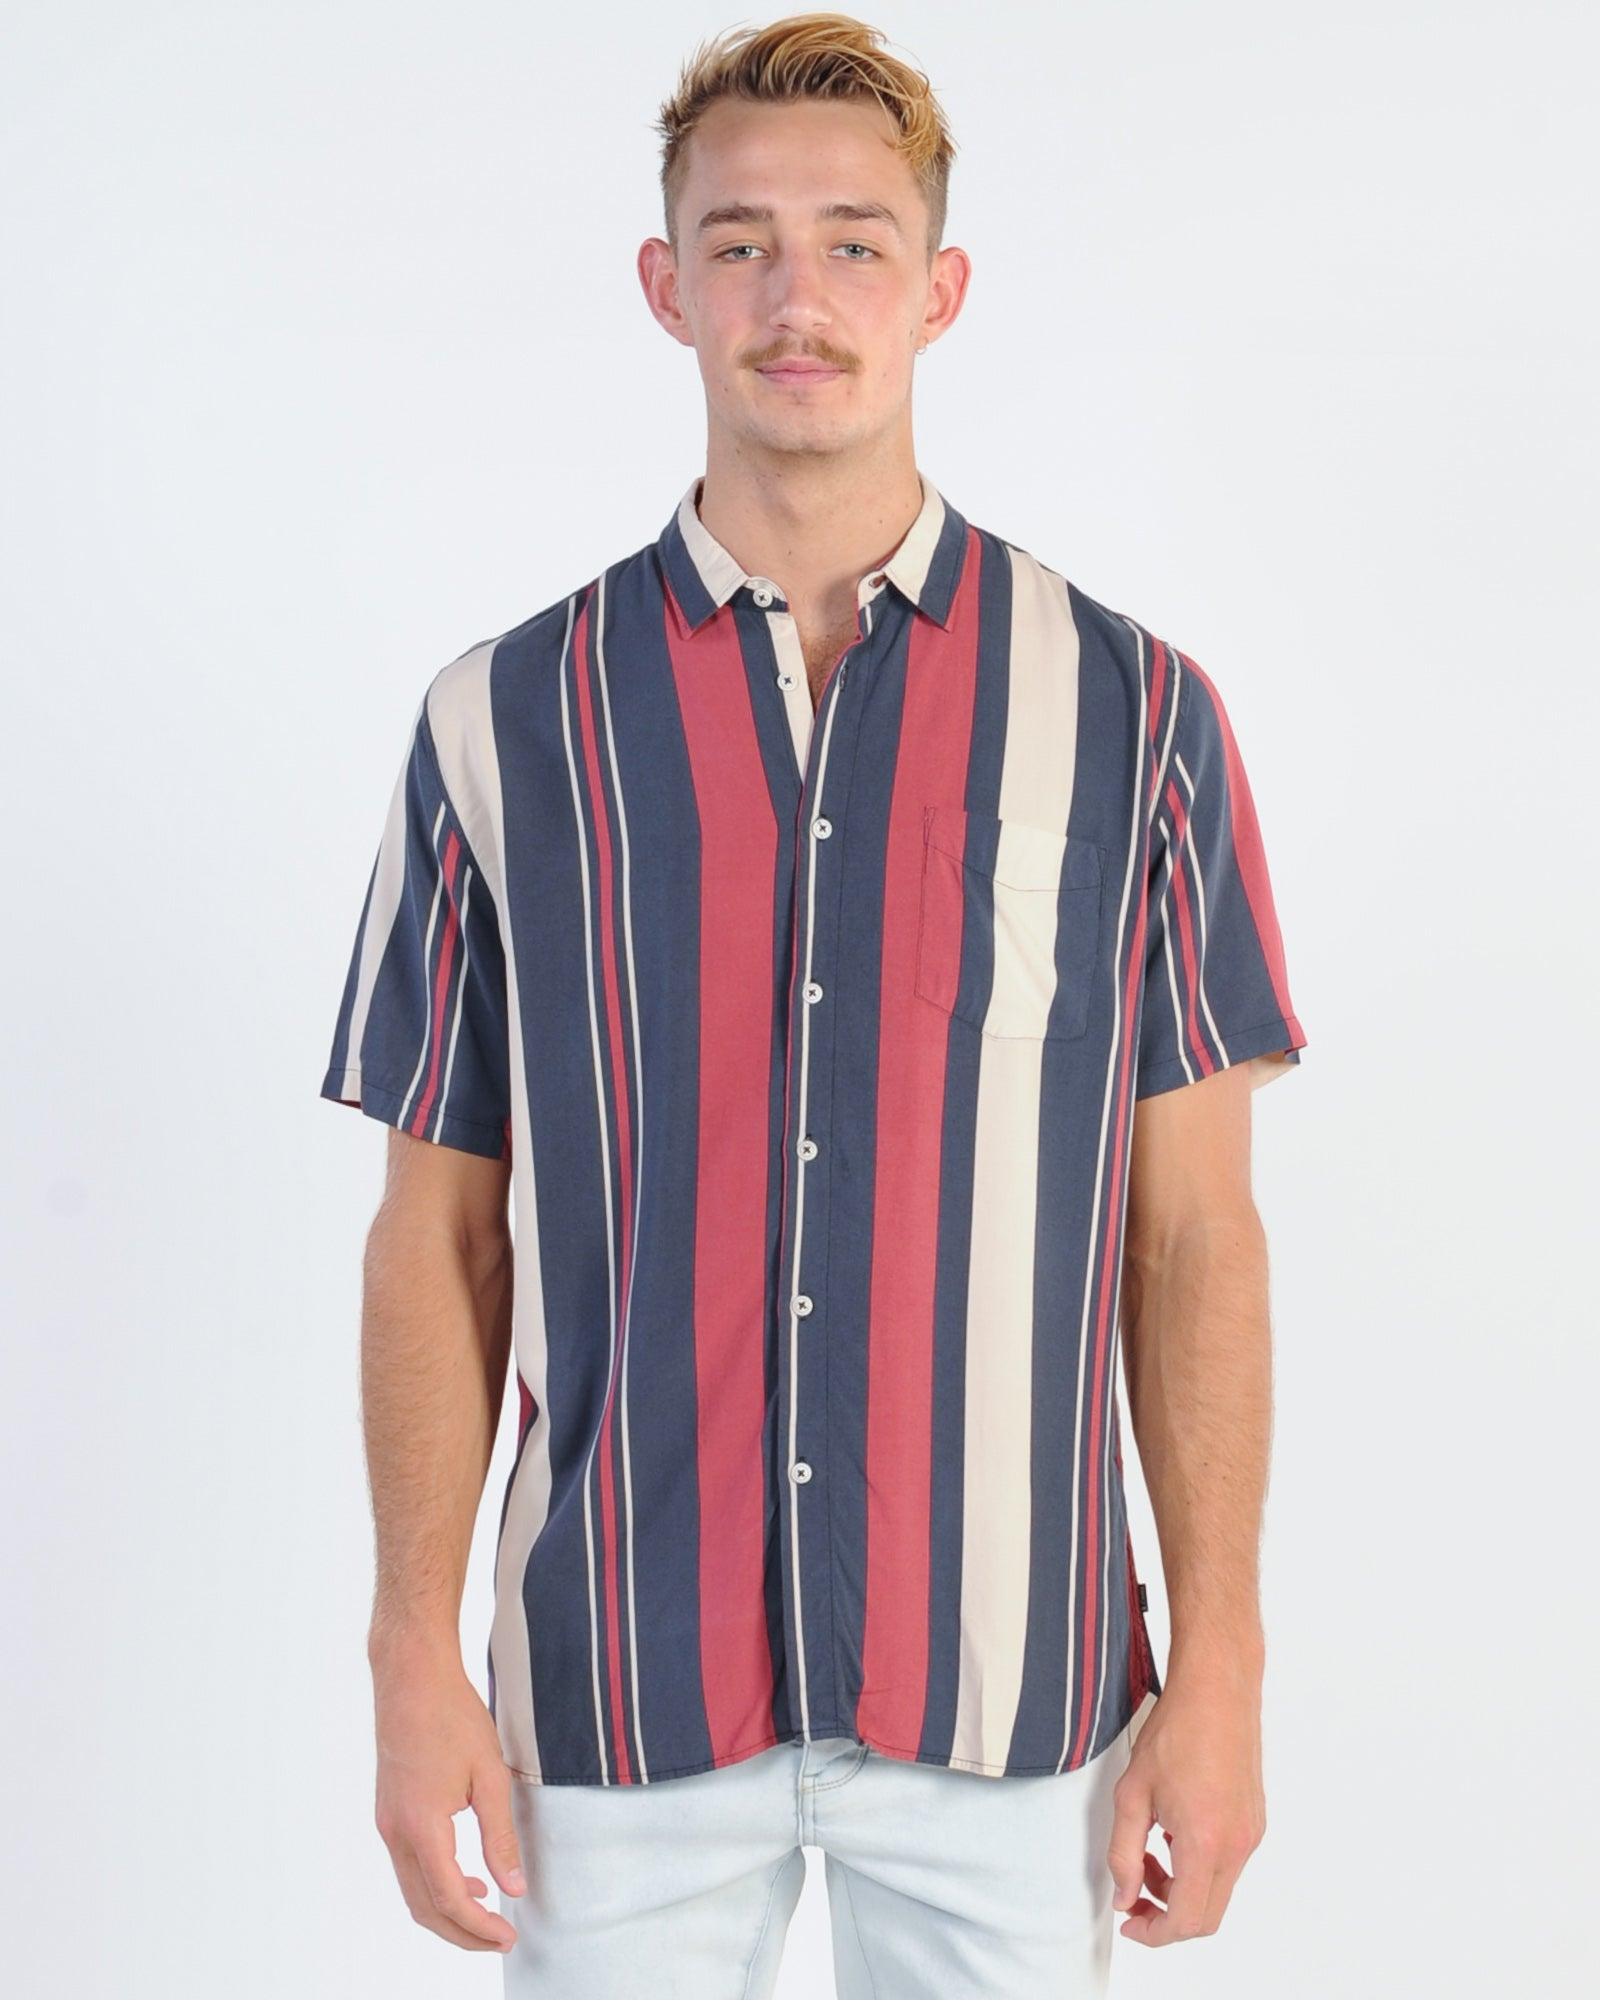 Barney Cools Holiday Vert Stripe S/S Shirt - Red